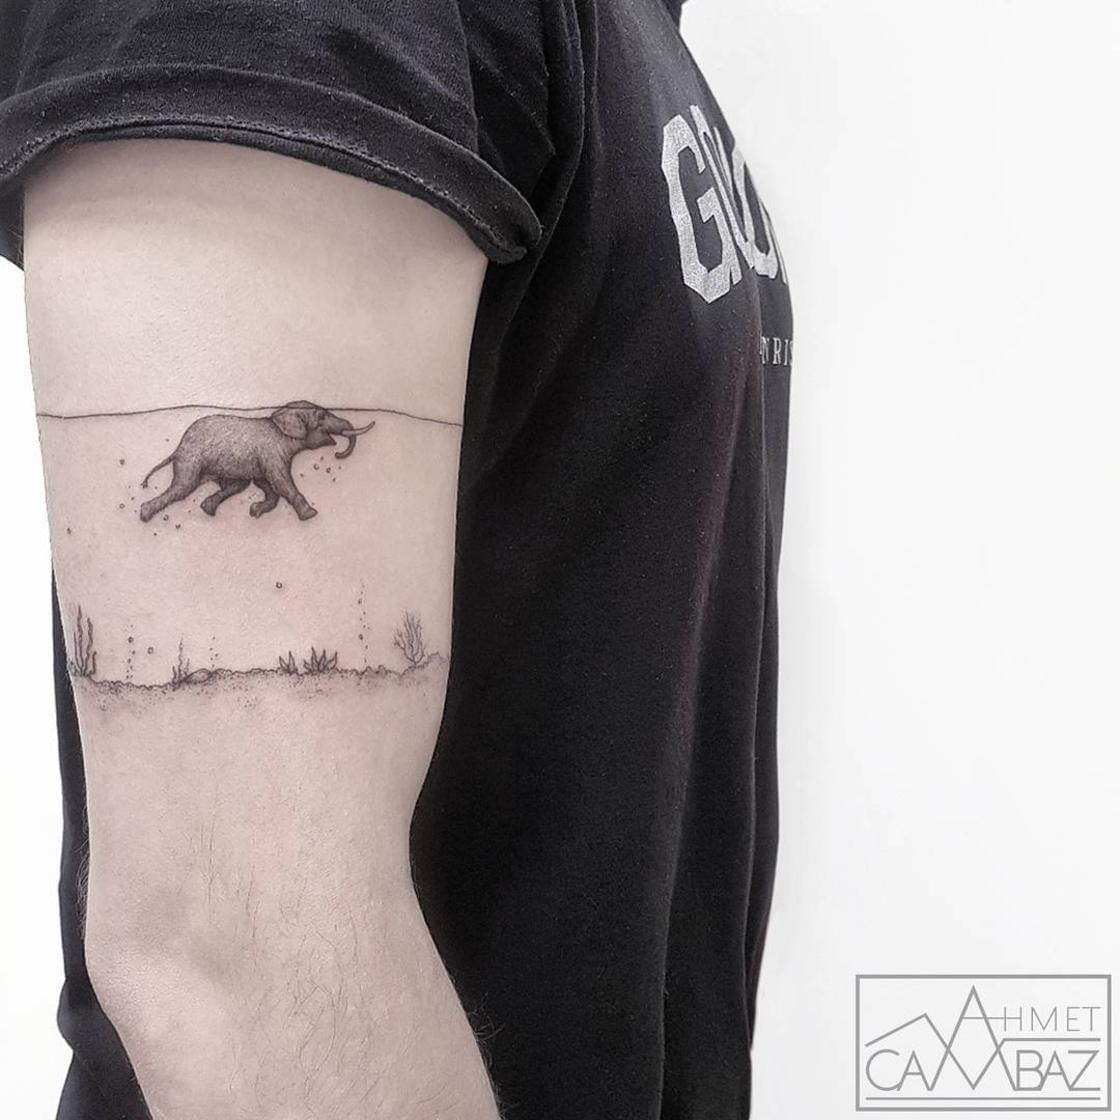 Simple but adorable, the tattoos of Ahmet Cambaz